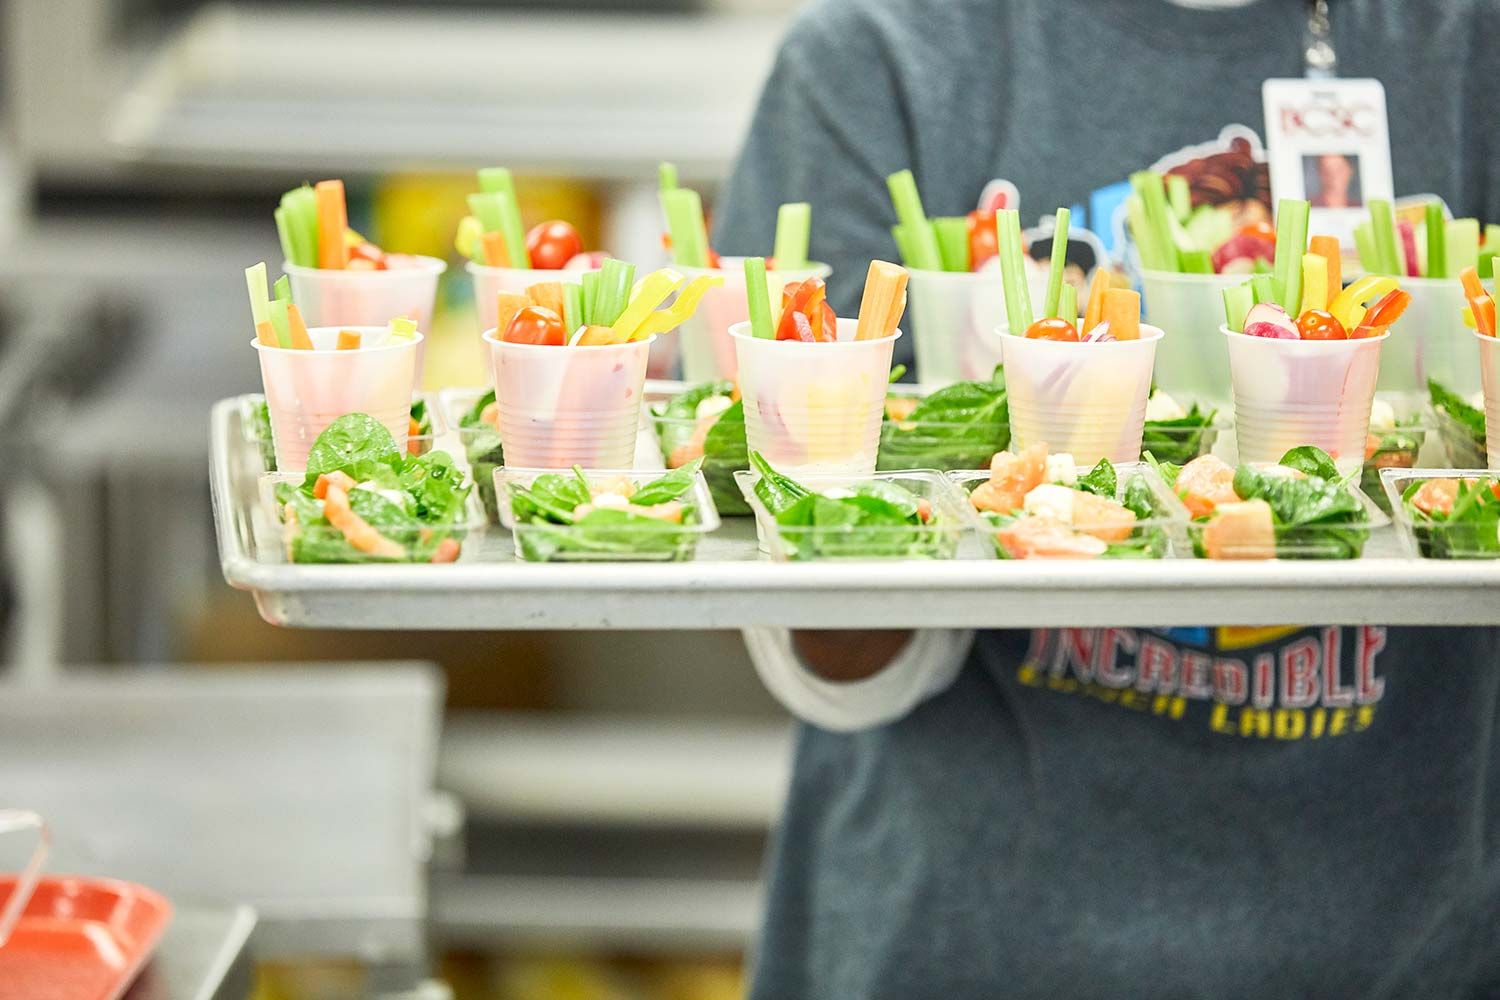 Bartholomew Consolidated School Corporation  serves vegetable strips in cups of ranch dressing, using local cucumbers, peppers, and cherry tomatoes, in season.